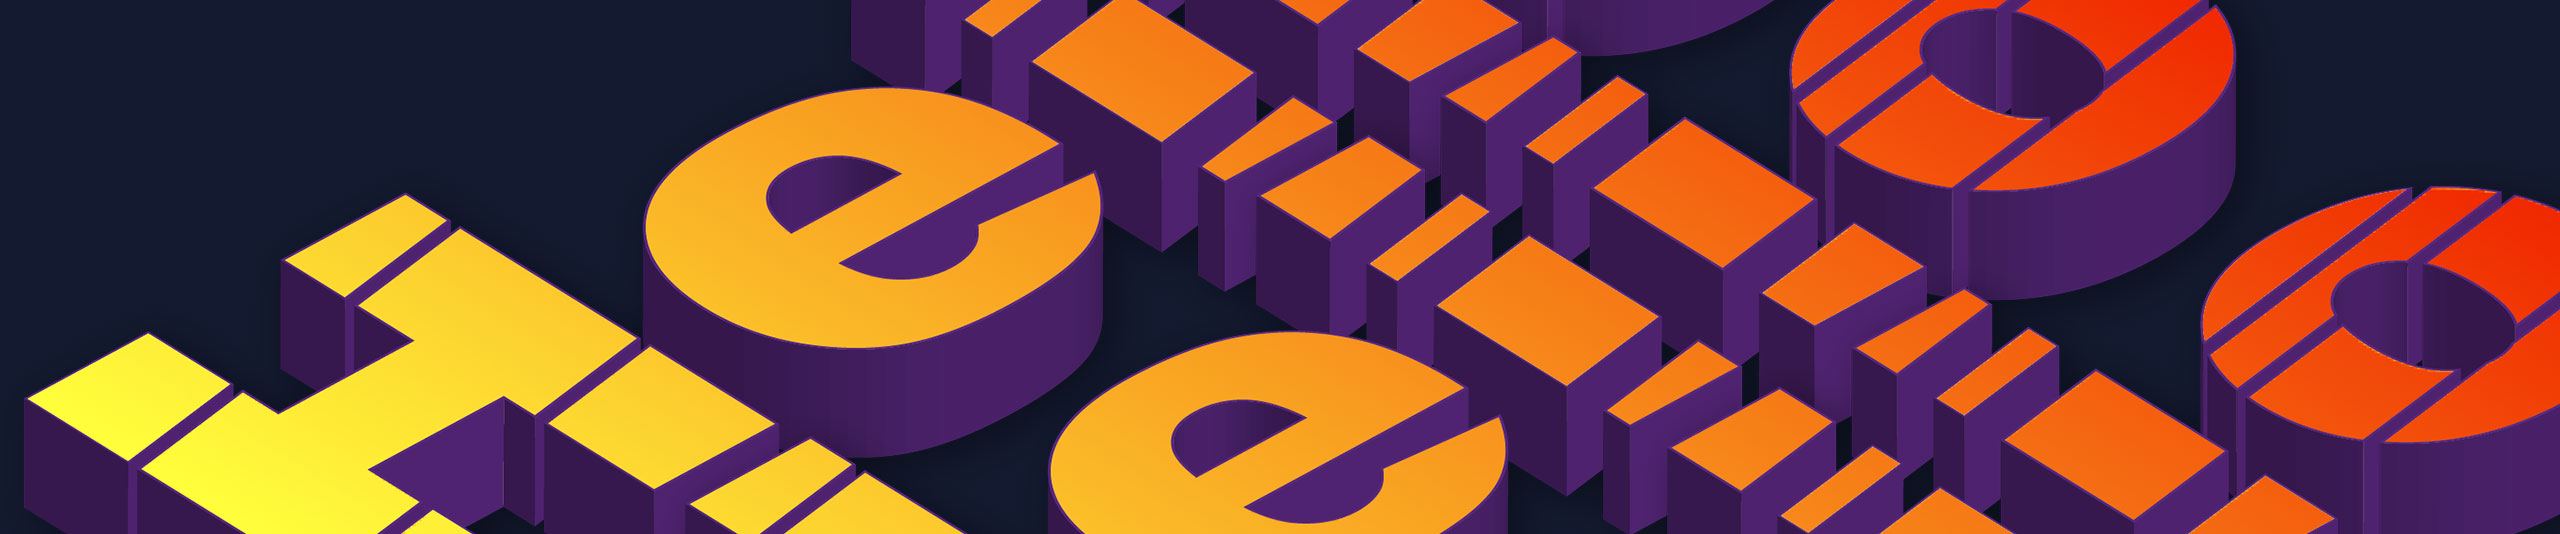 Create Sliced or Cut Isometric (3D) Text Effects in Adobe Illustrator